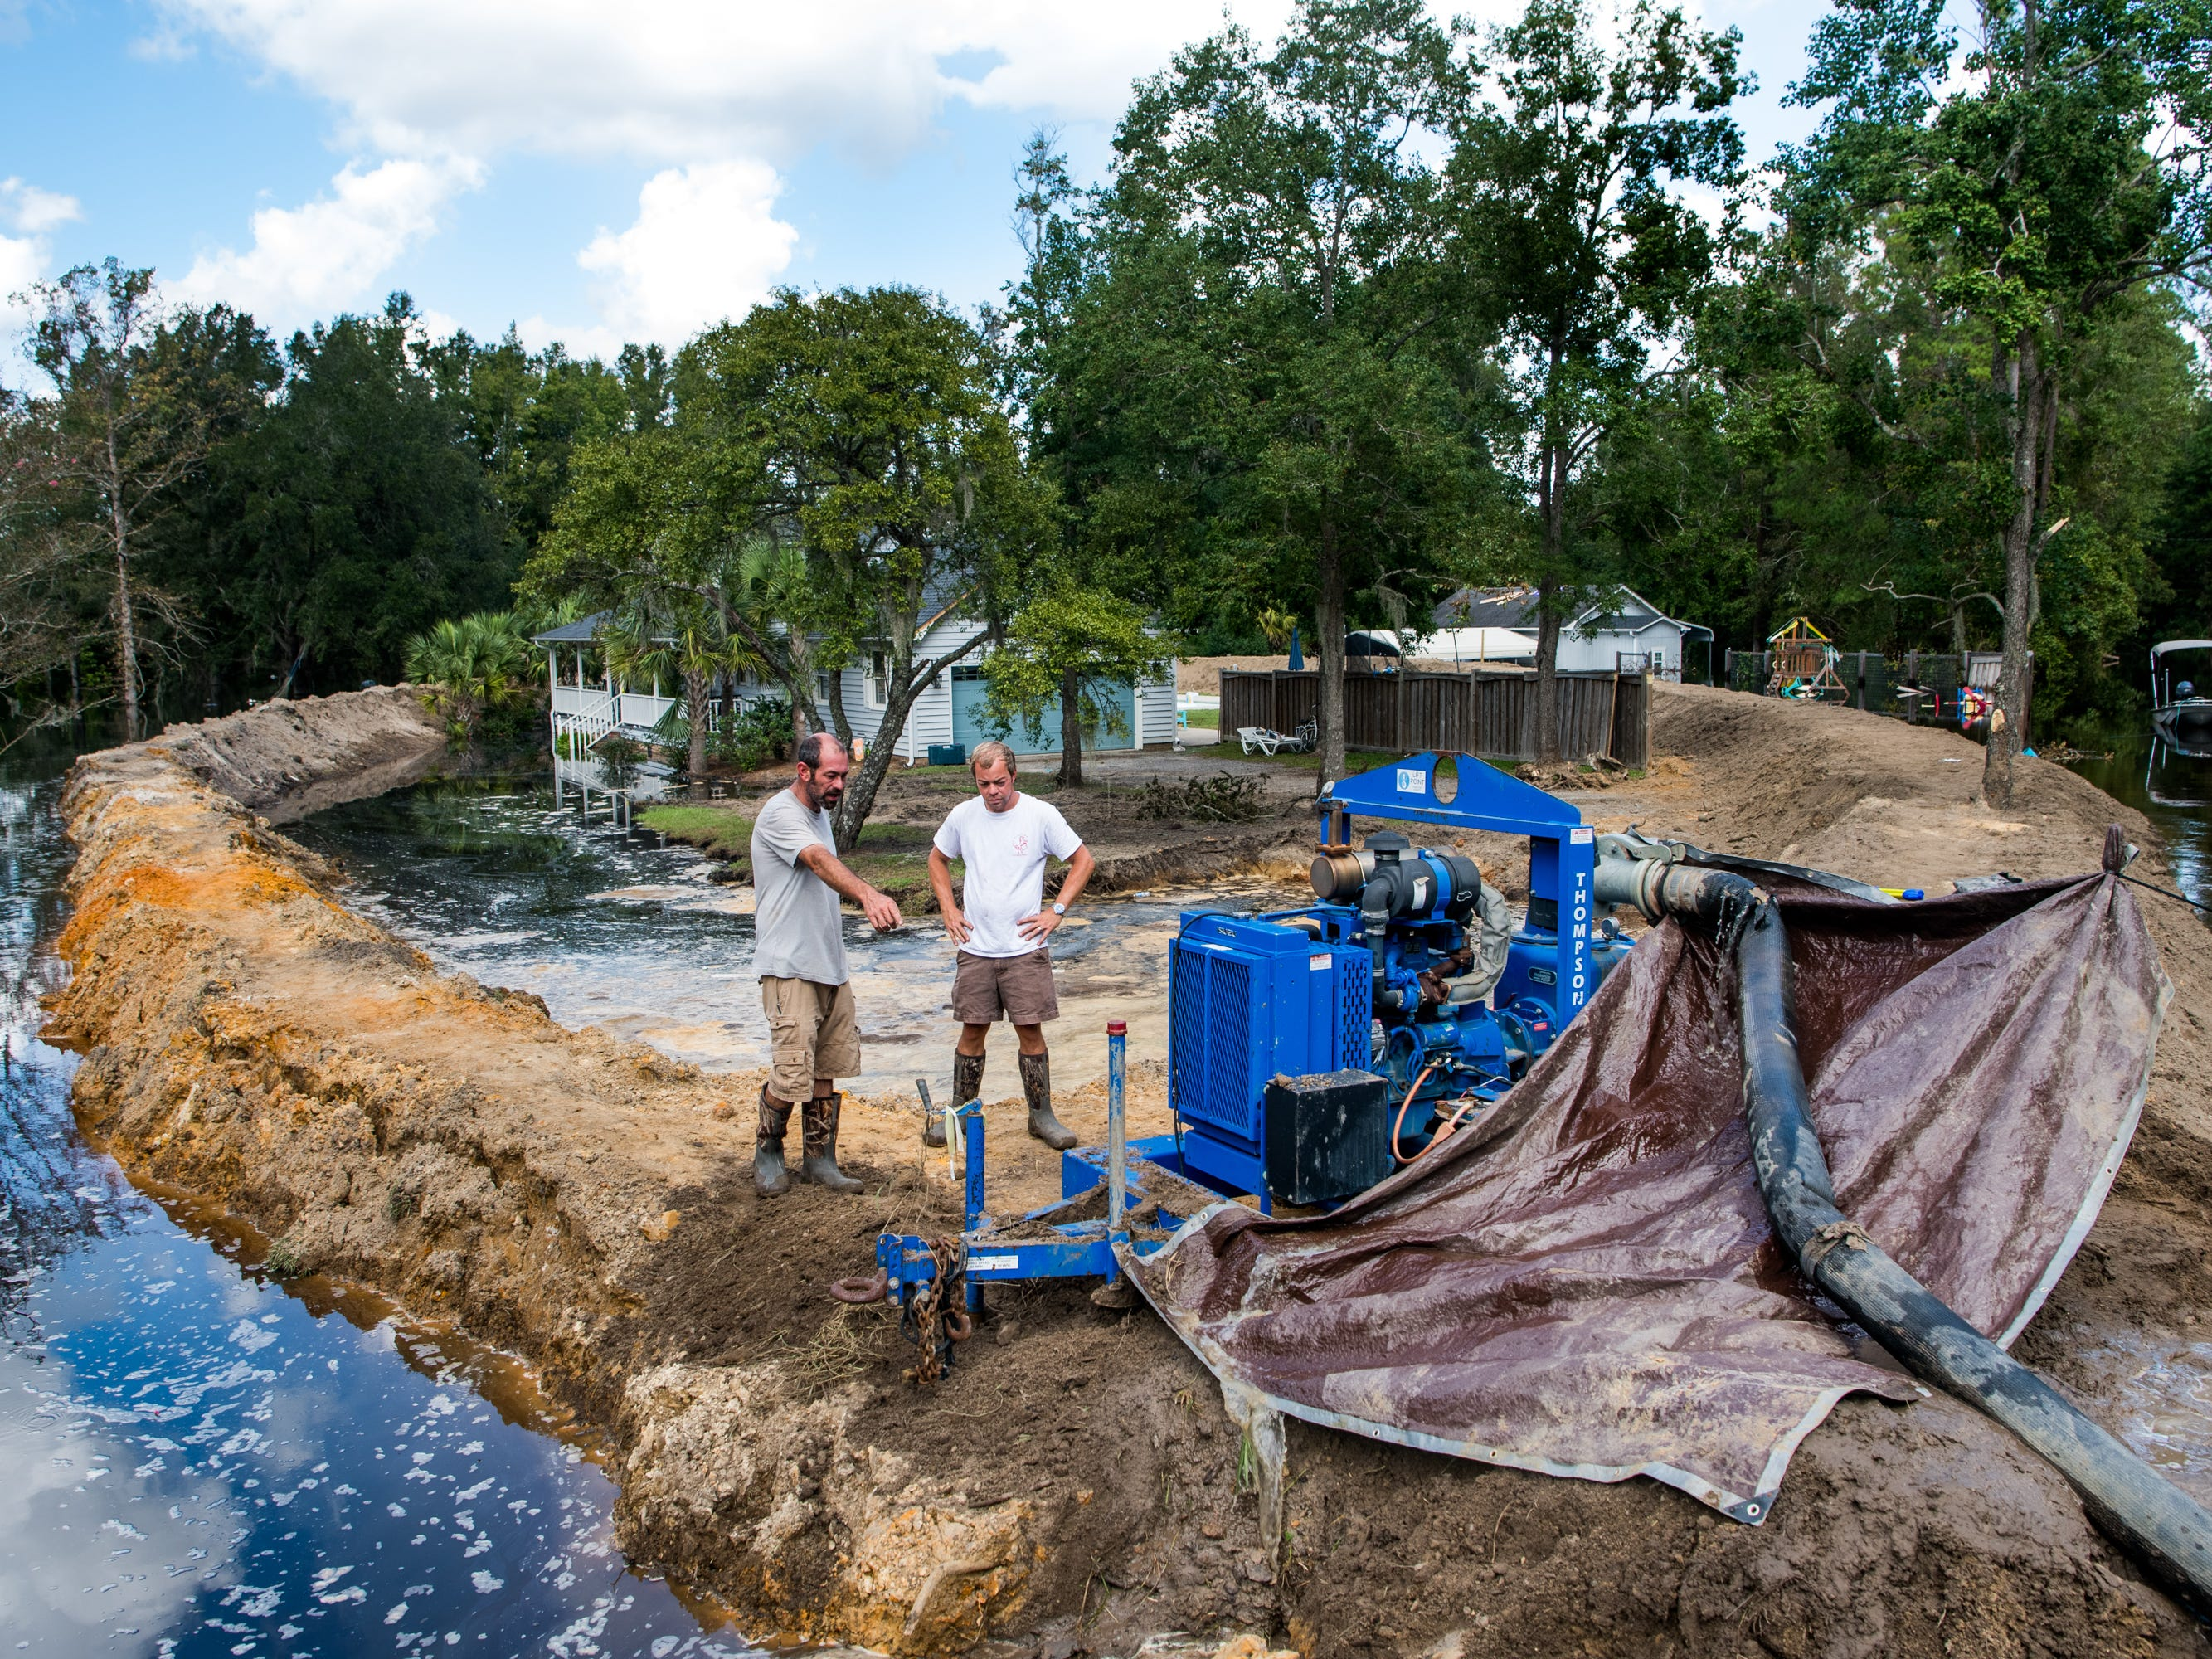 Jason Johnson, left, and homeowner Archie Sanders work to build a temporary levee to hold back floodwaters caused by Hurricane Florence near the Waccamaw River on Sept. 23, 2018 in Conway, S.C.